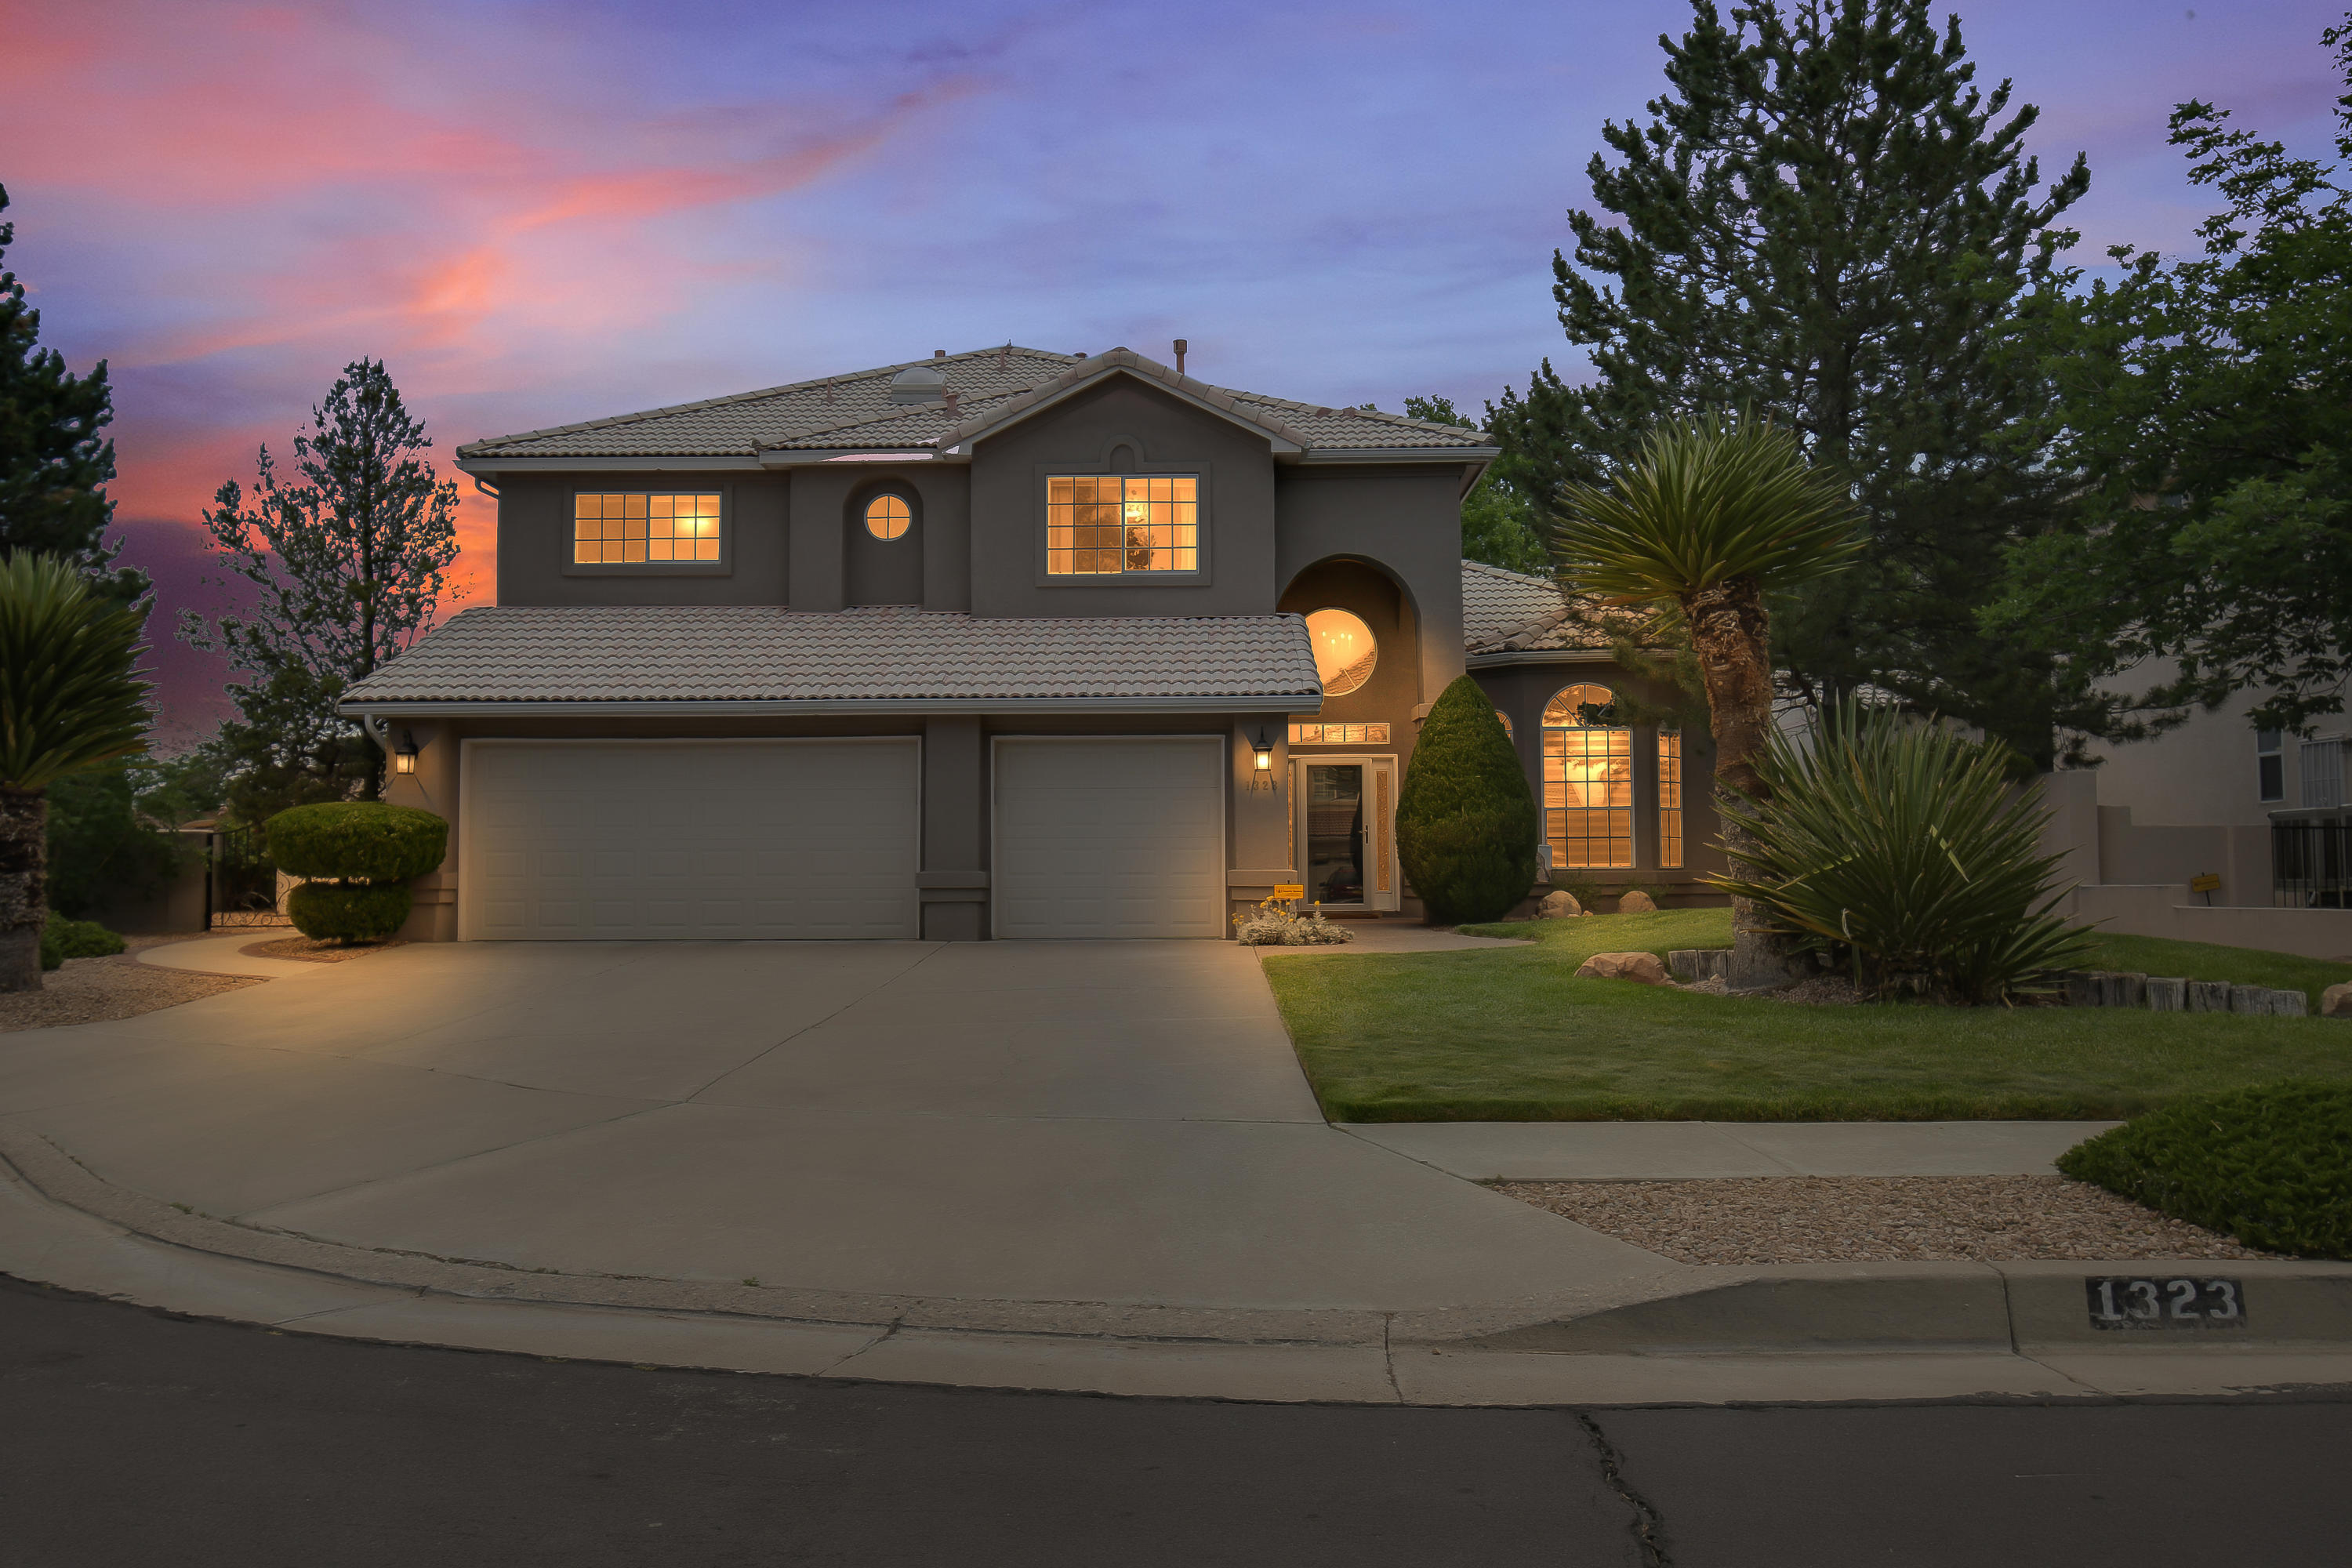 This well maintained home sits on a large Cul-de-Sac lot with no thru traffic! Plenty of upgrades to this already beautiful home.  Please review the Home Improvements in the documents section for all the updates. Here are a few: Updated kitchen with new  quartz countertops, stainless steel Bosch dishwasher, GE double oven, Samsung refrigerator. Updated downstairs bathroom, new storm doors, updated patio area, New LG extra large capacity front load washer, LG ultra-capacity front load electric dryer.  Recent replacements of 2 furnaces and 2 refrigerated air units, and upgraded electrical!  Excellent locations, close to hiking trails, Sandia Labs.